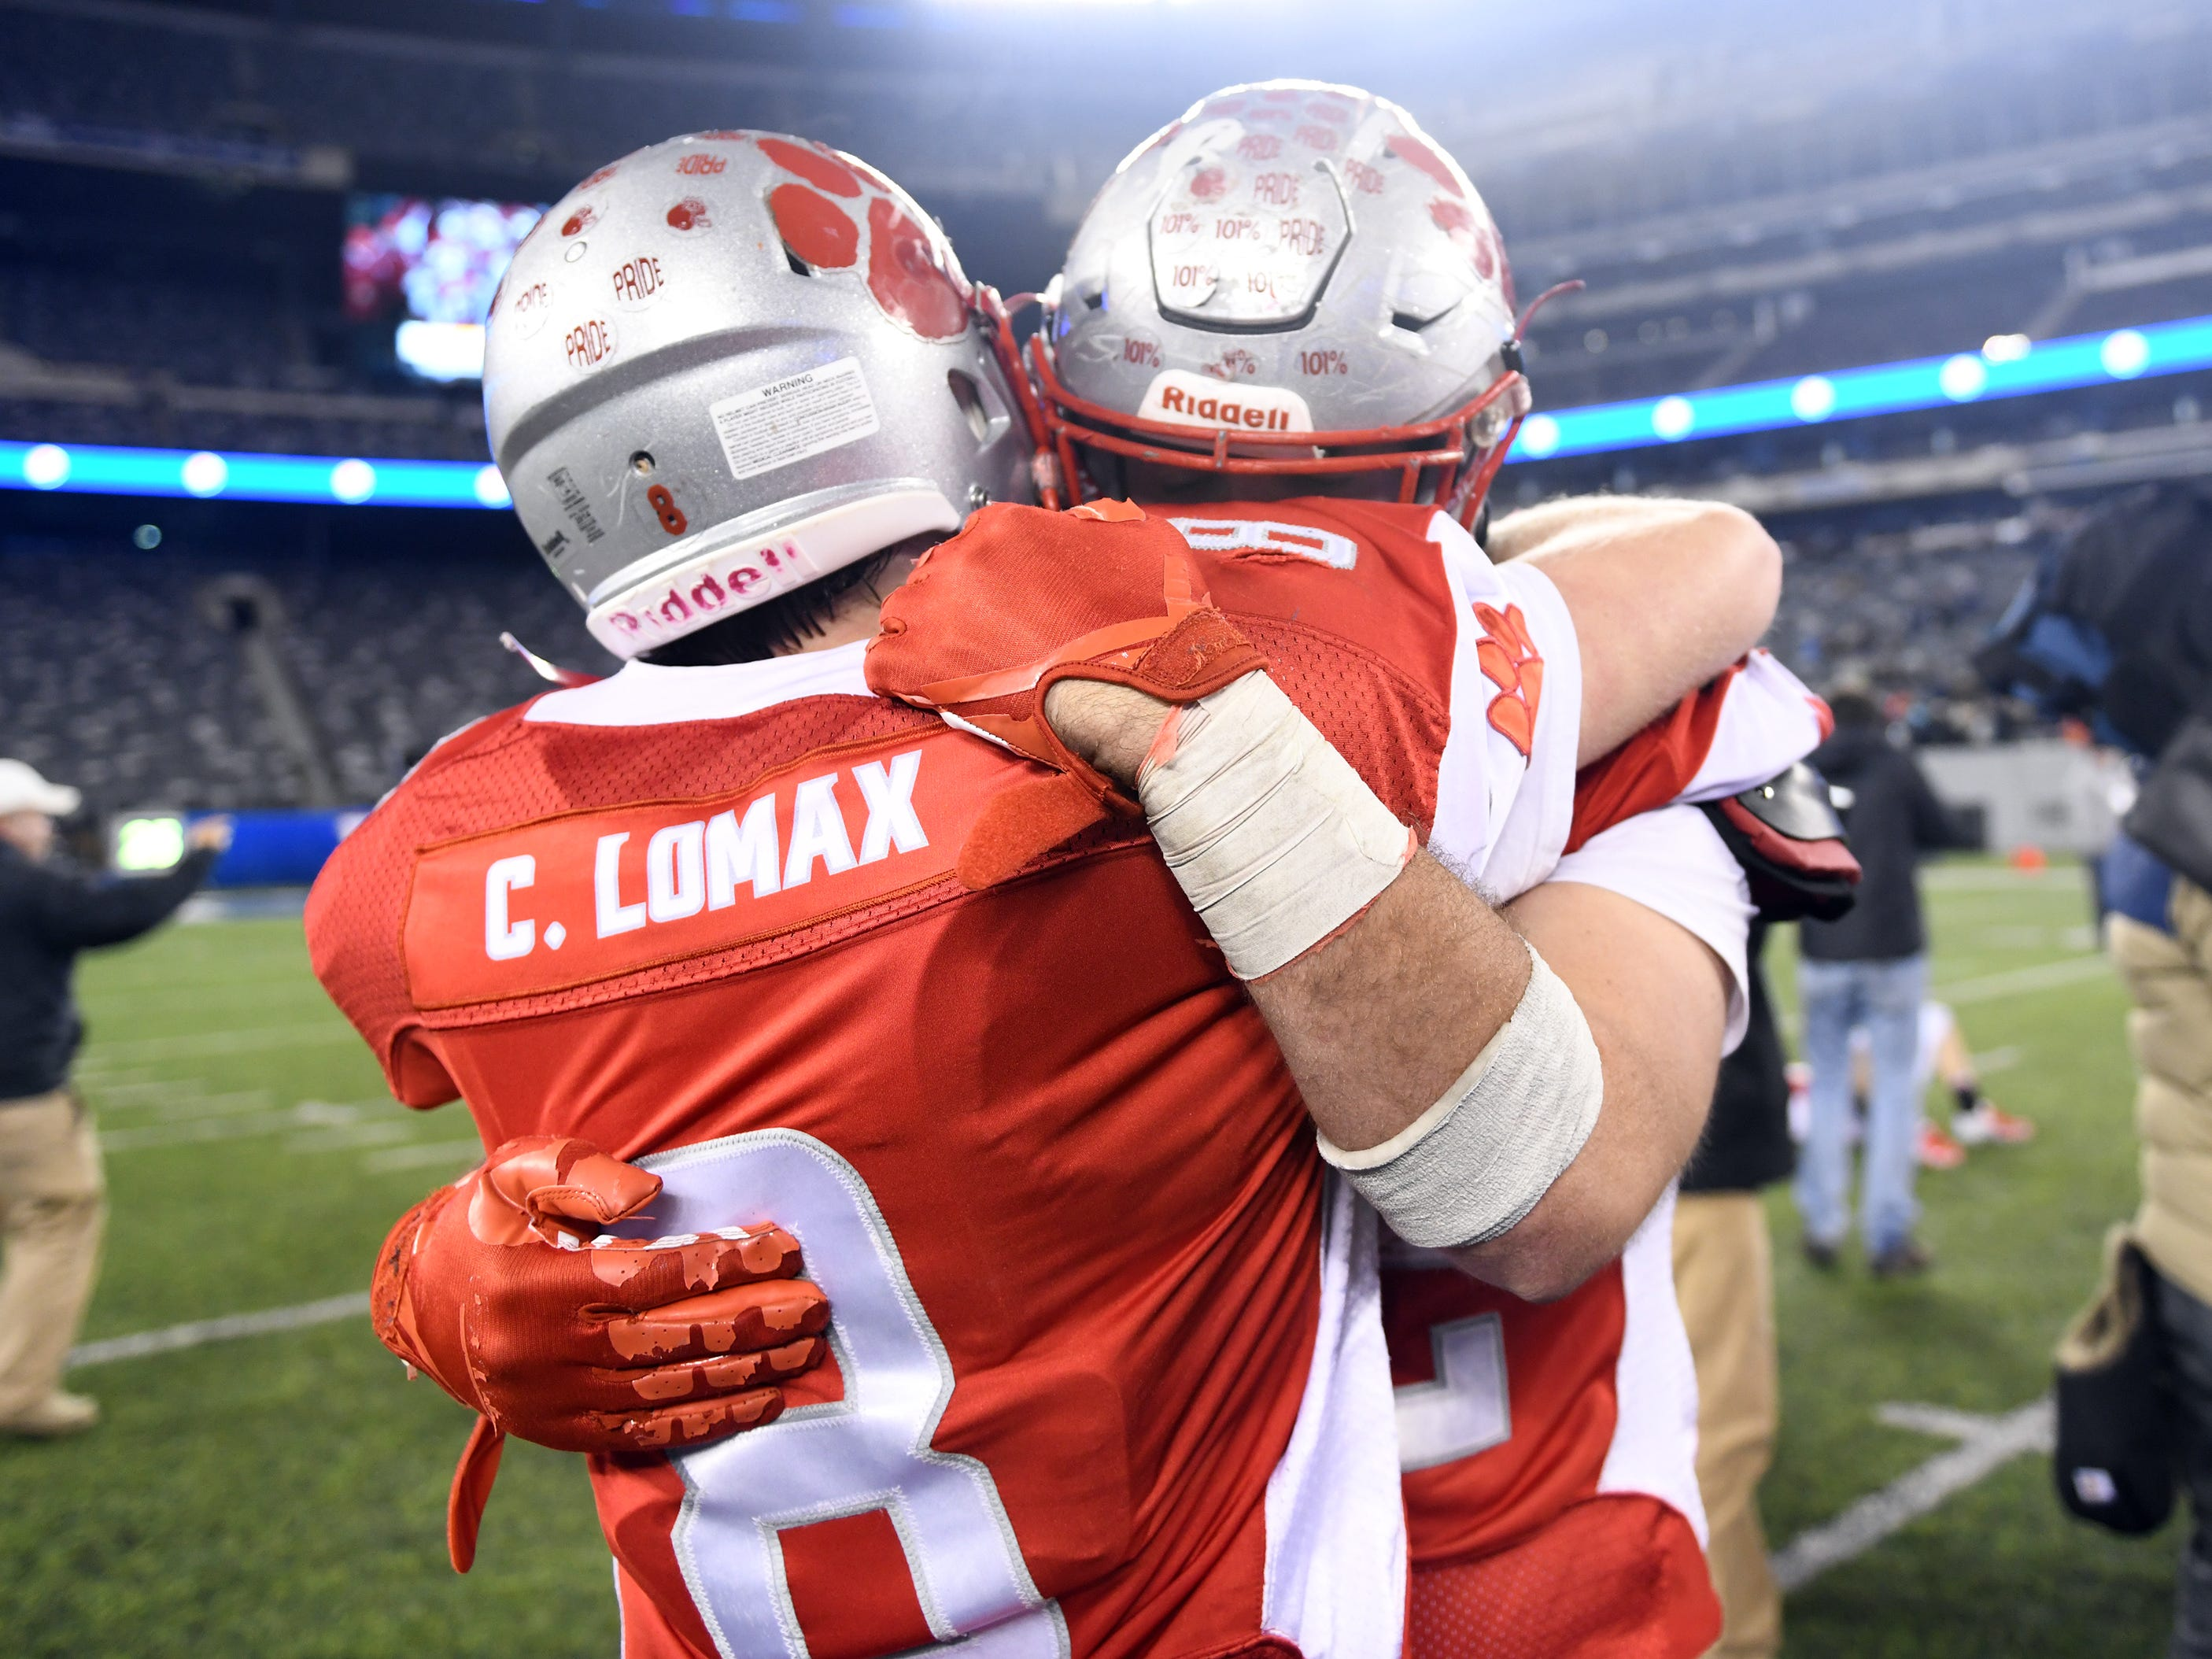 St. Joseph's Chase Lomax gives his older brother Brad a hug after winning the Non-Public 2 state championship by beating Holy Spirit. The Wildcats topped the Spartans, 41-22 at MetLife Stadium on Friday, November 30, 2018.